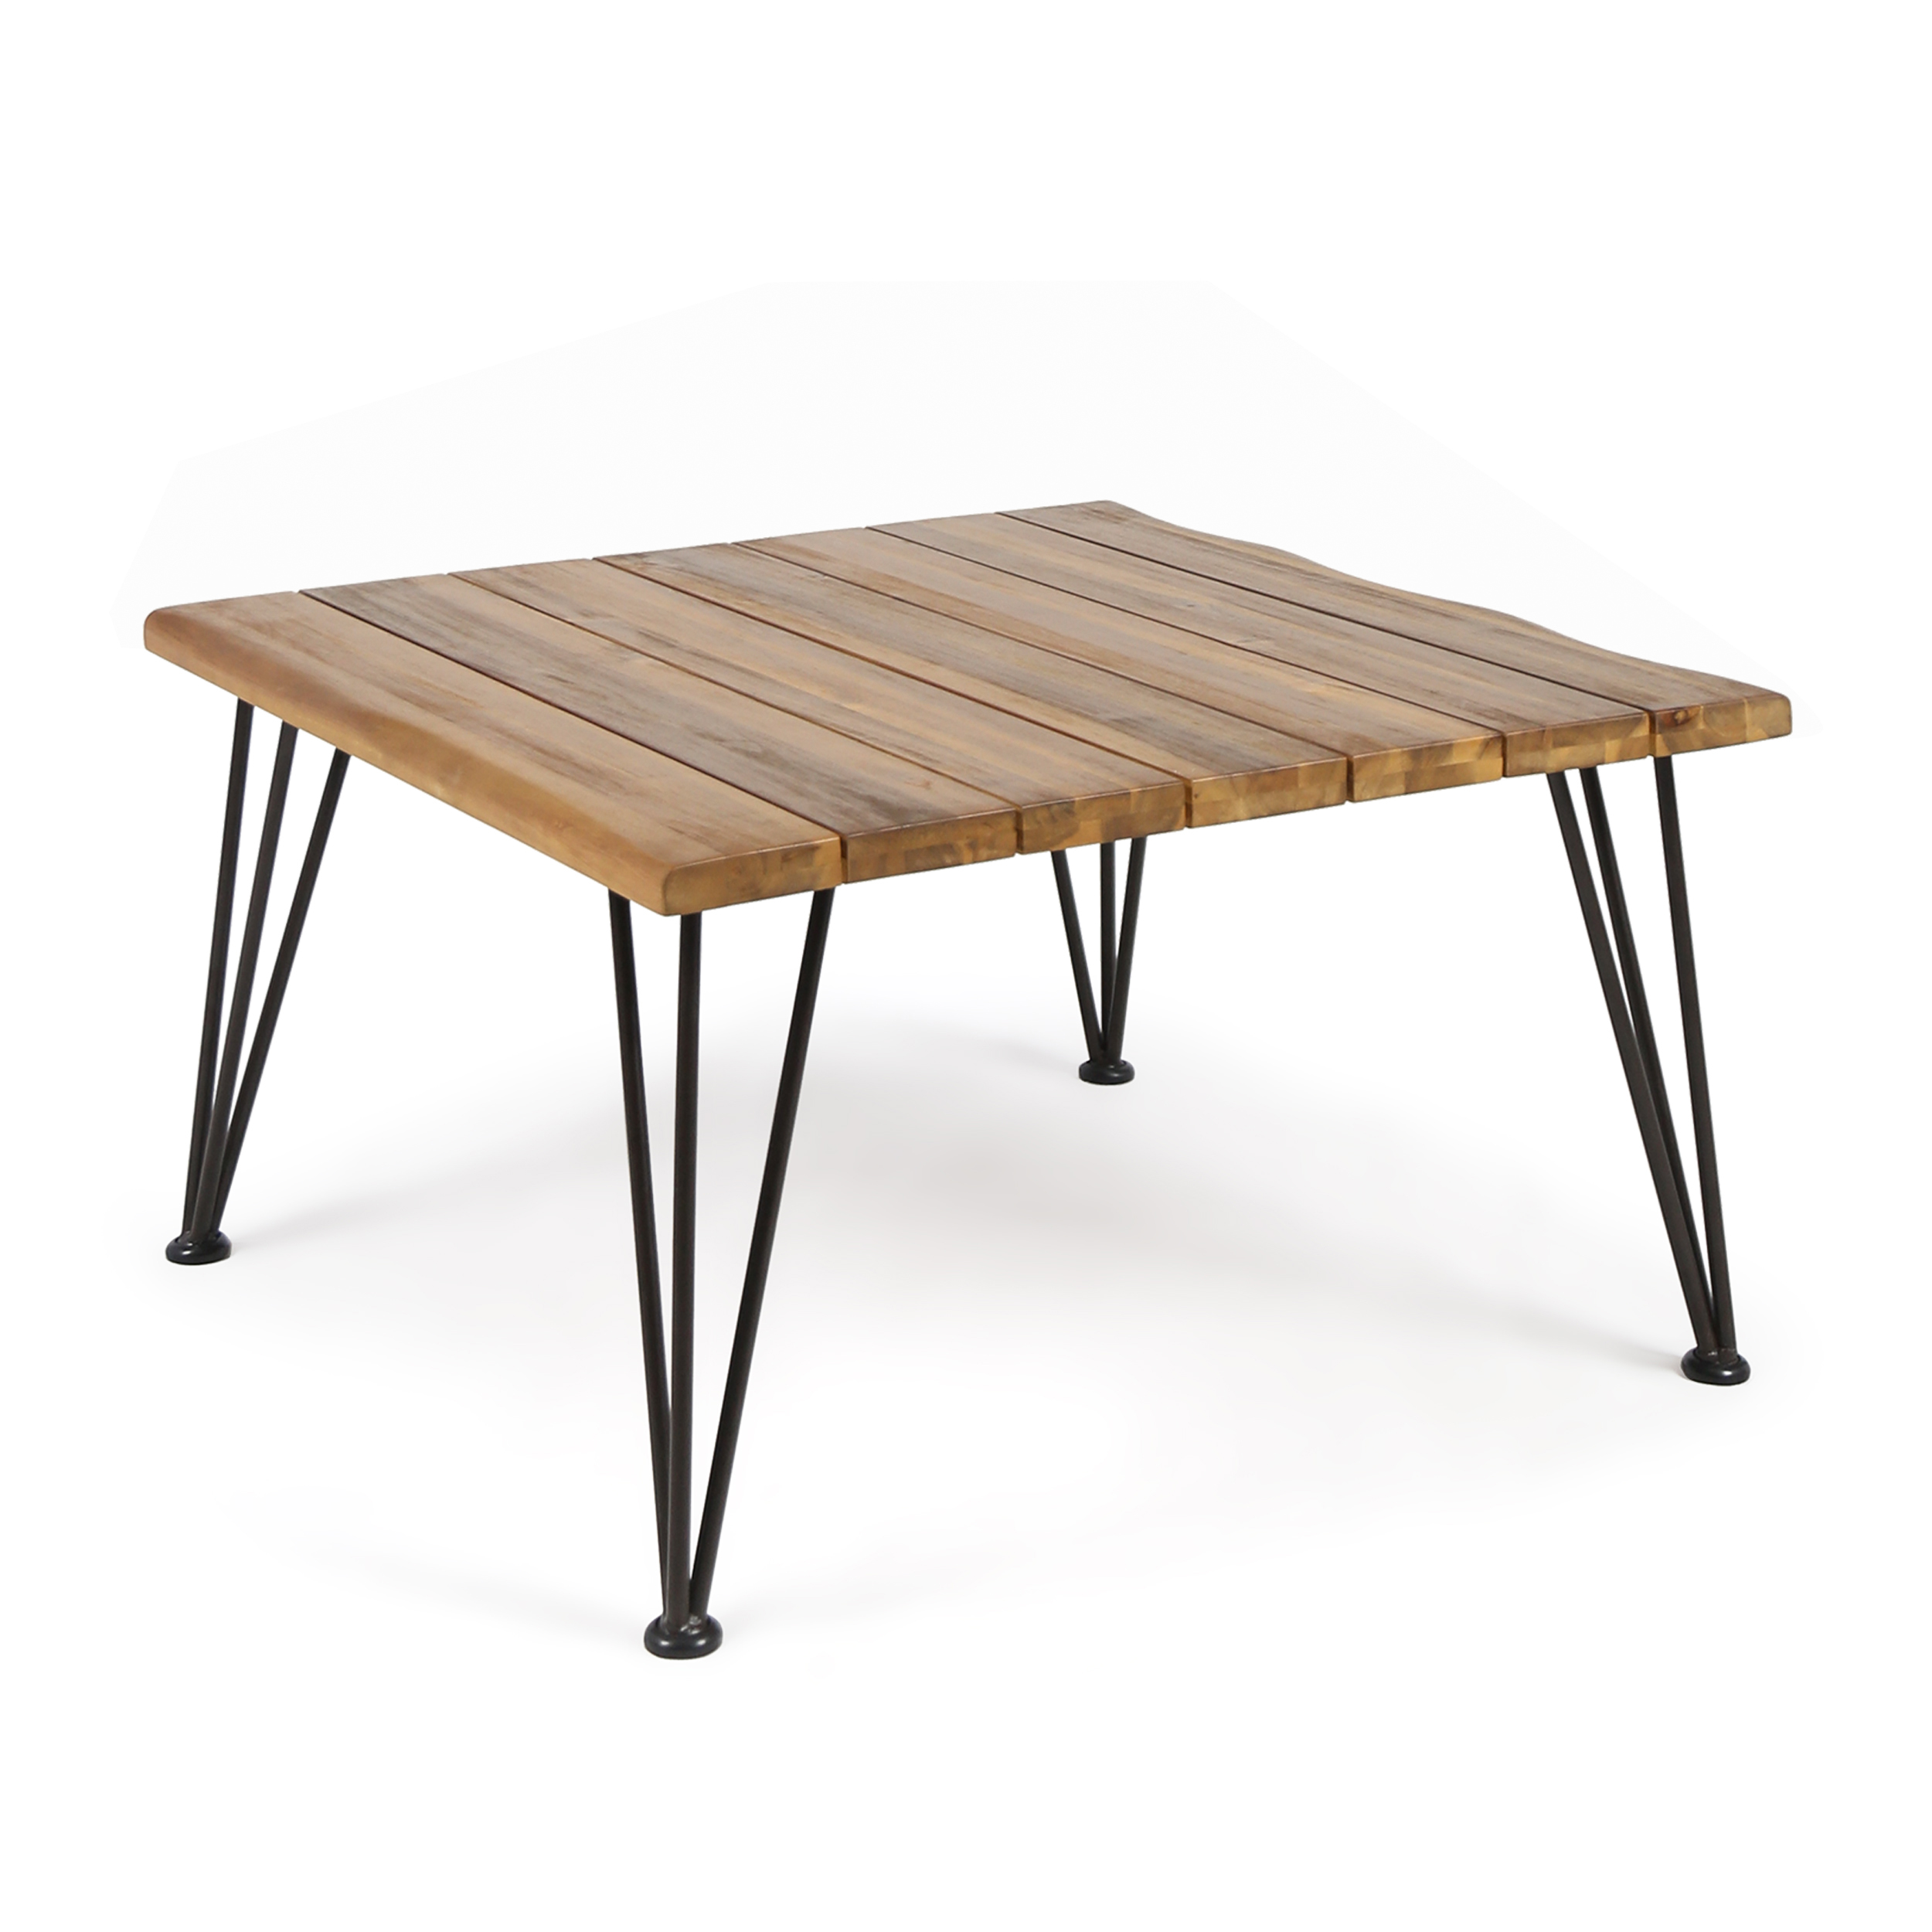 Zach Outdoor Industrial Acacia Wood Coffee Table with Iron Frame, Teak Finish and Rustic Metal Finish by GDF Studio